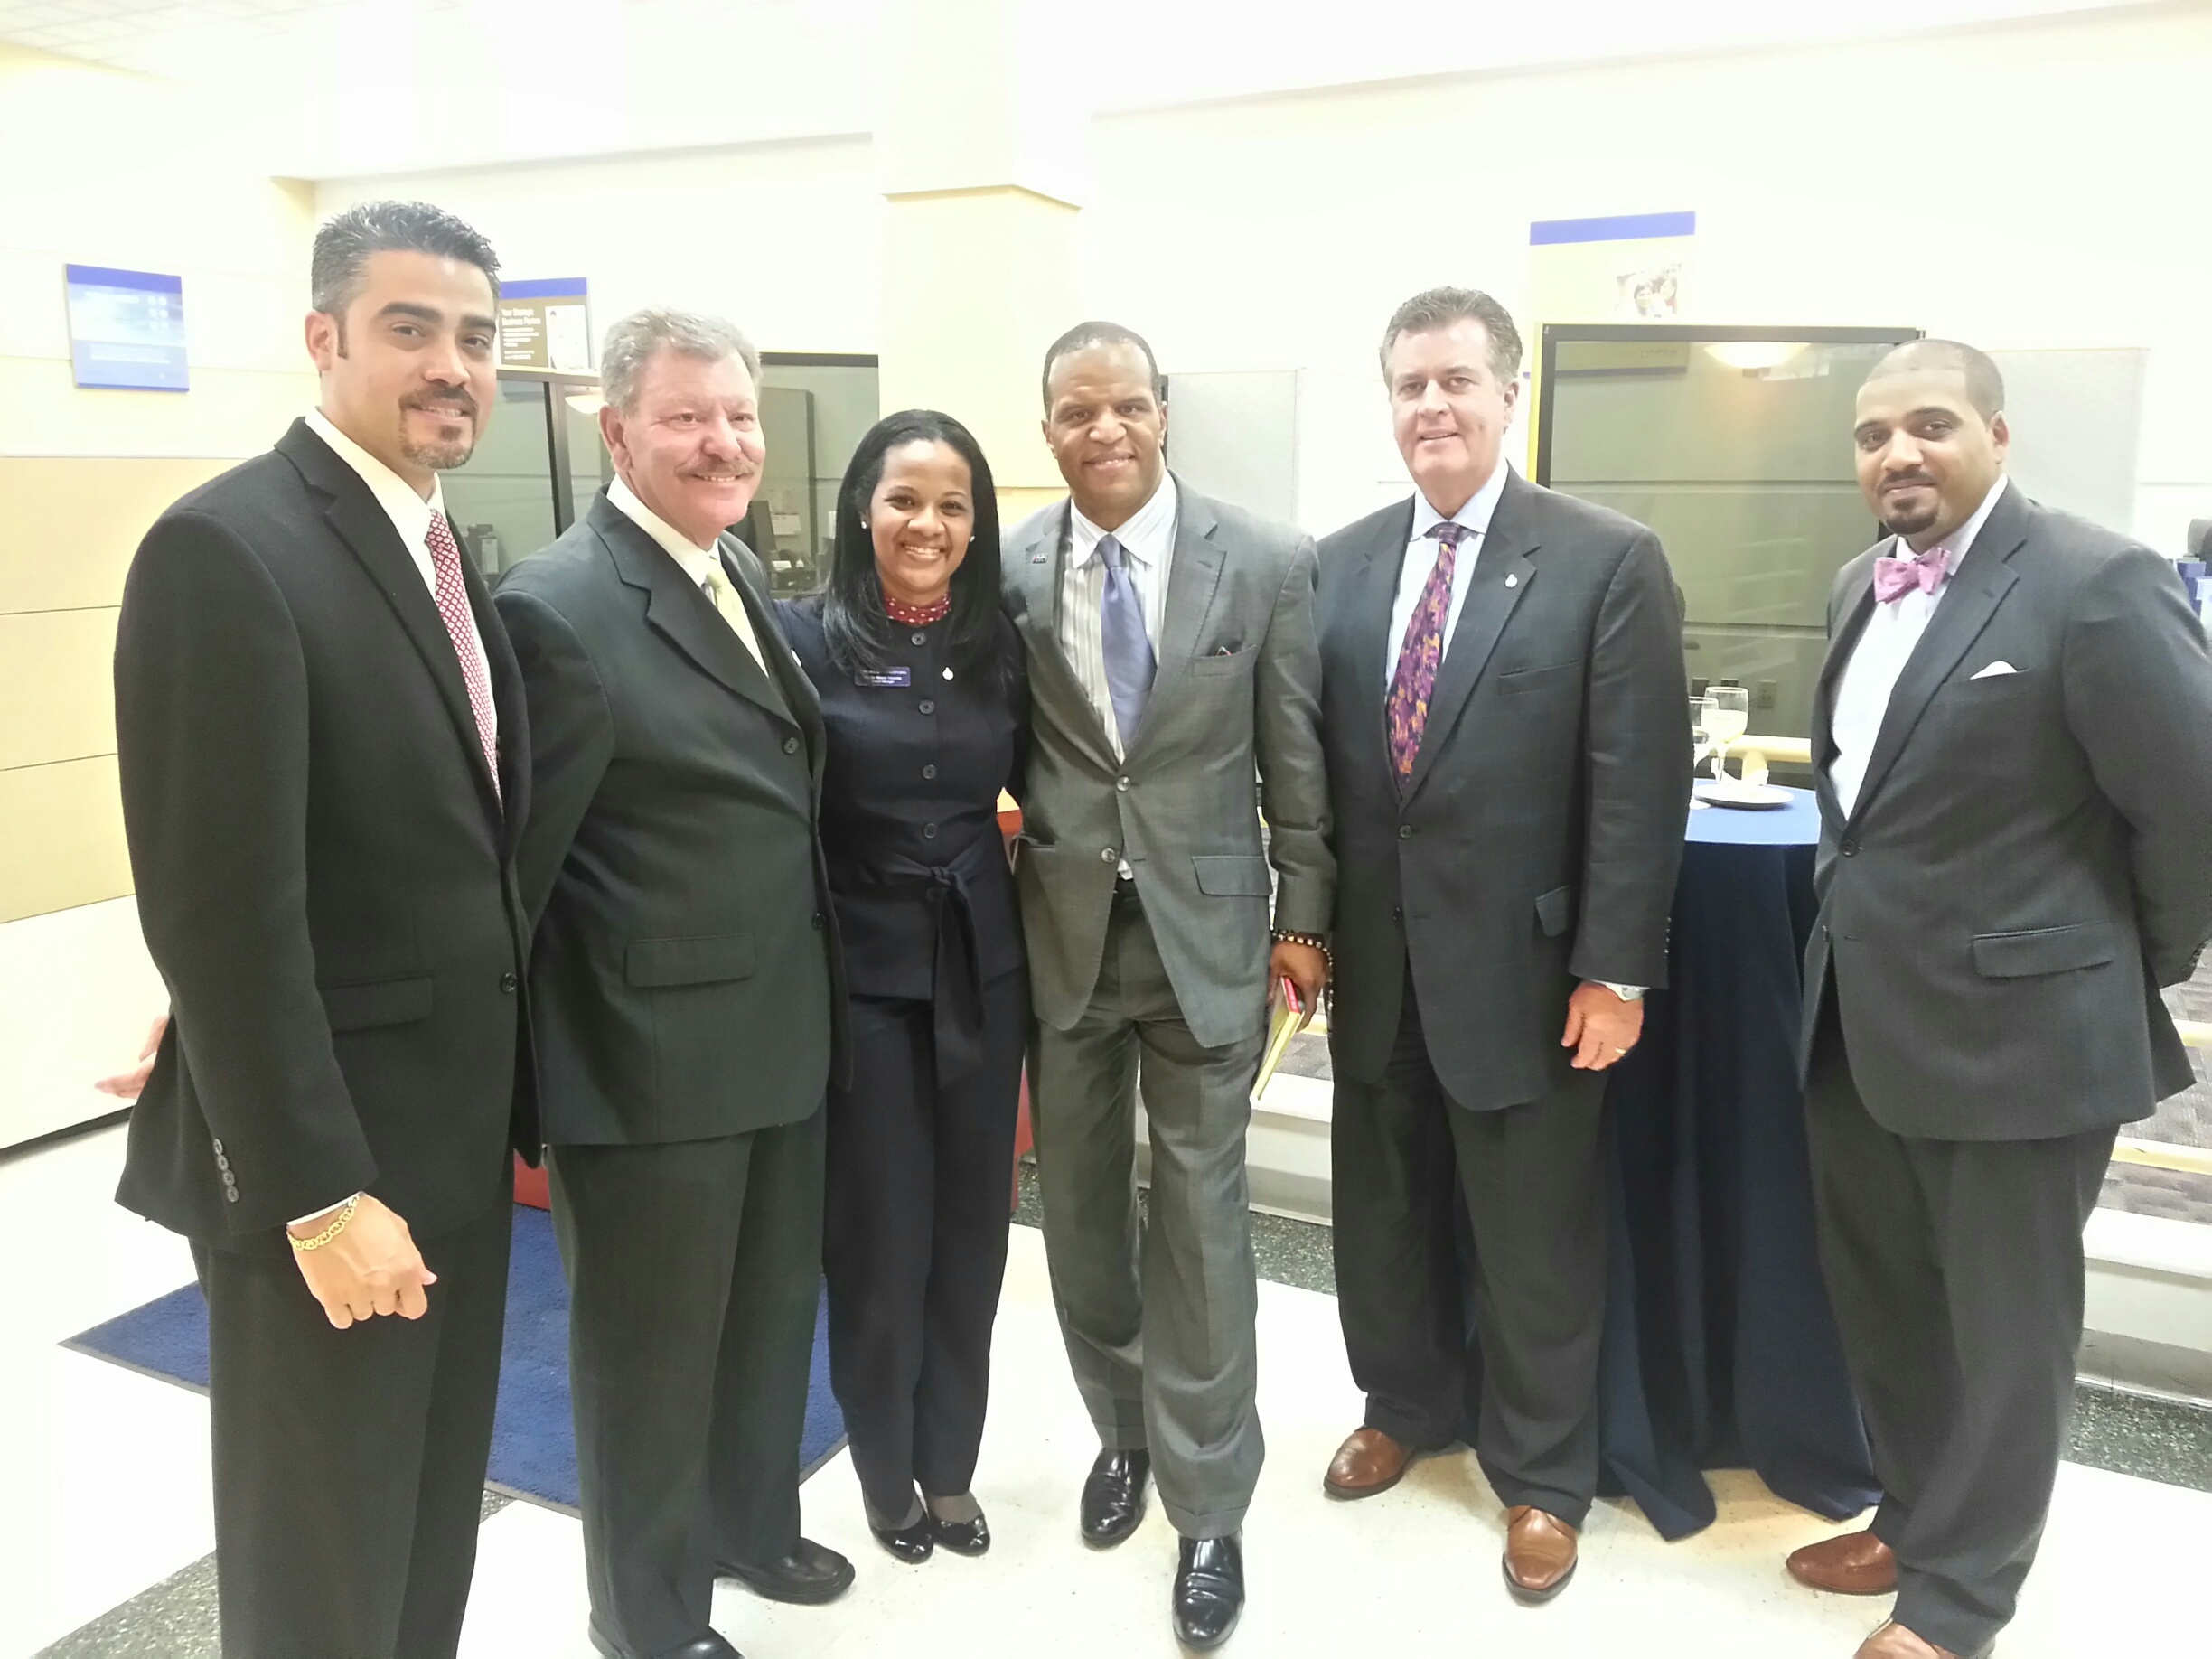 Helping people succeed financially to make our communities stronger. Pictured left to right: Rafael Sanchez, PCB Retail Manager, Manhattan North, Bronx & Queens; Lenny Caro, President of the Bronx Chamber of Commerce; Wanda Matos, PCB East Tremont Branch Manager; John Hope Bryant, Founder, Chairman and CEO, Operation HOPE, Inc.; Brian Doran, NY Metro Region Executive, PCB; Robert Hernandez, PCB Commercial Relationship Officer (Photo: Business Wire)